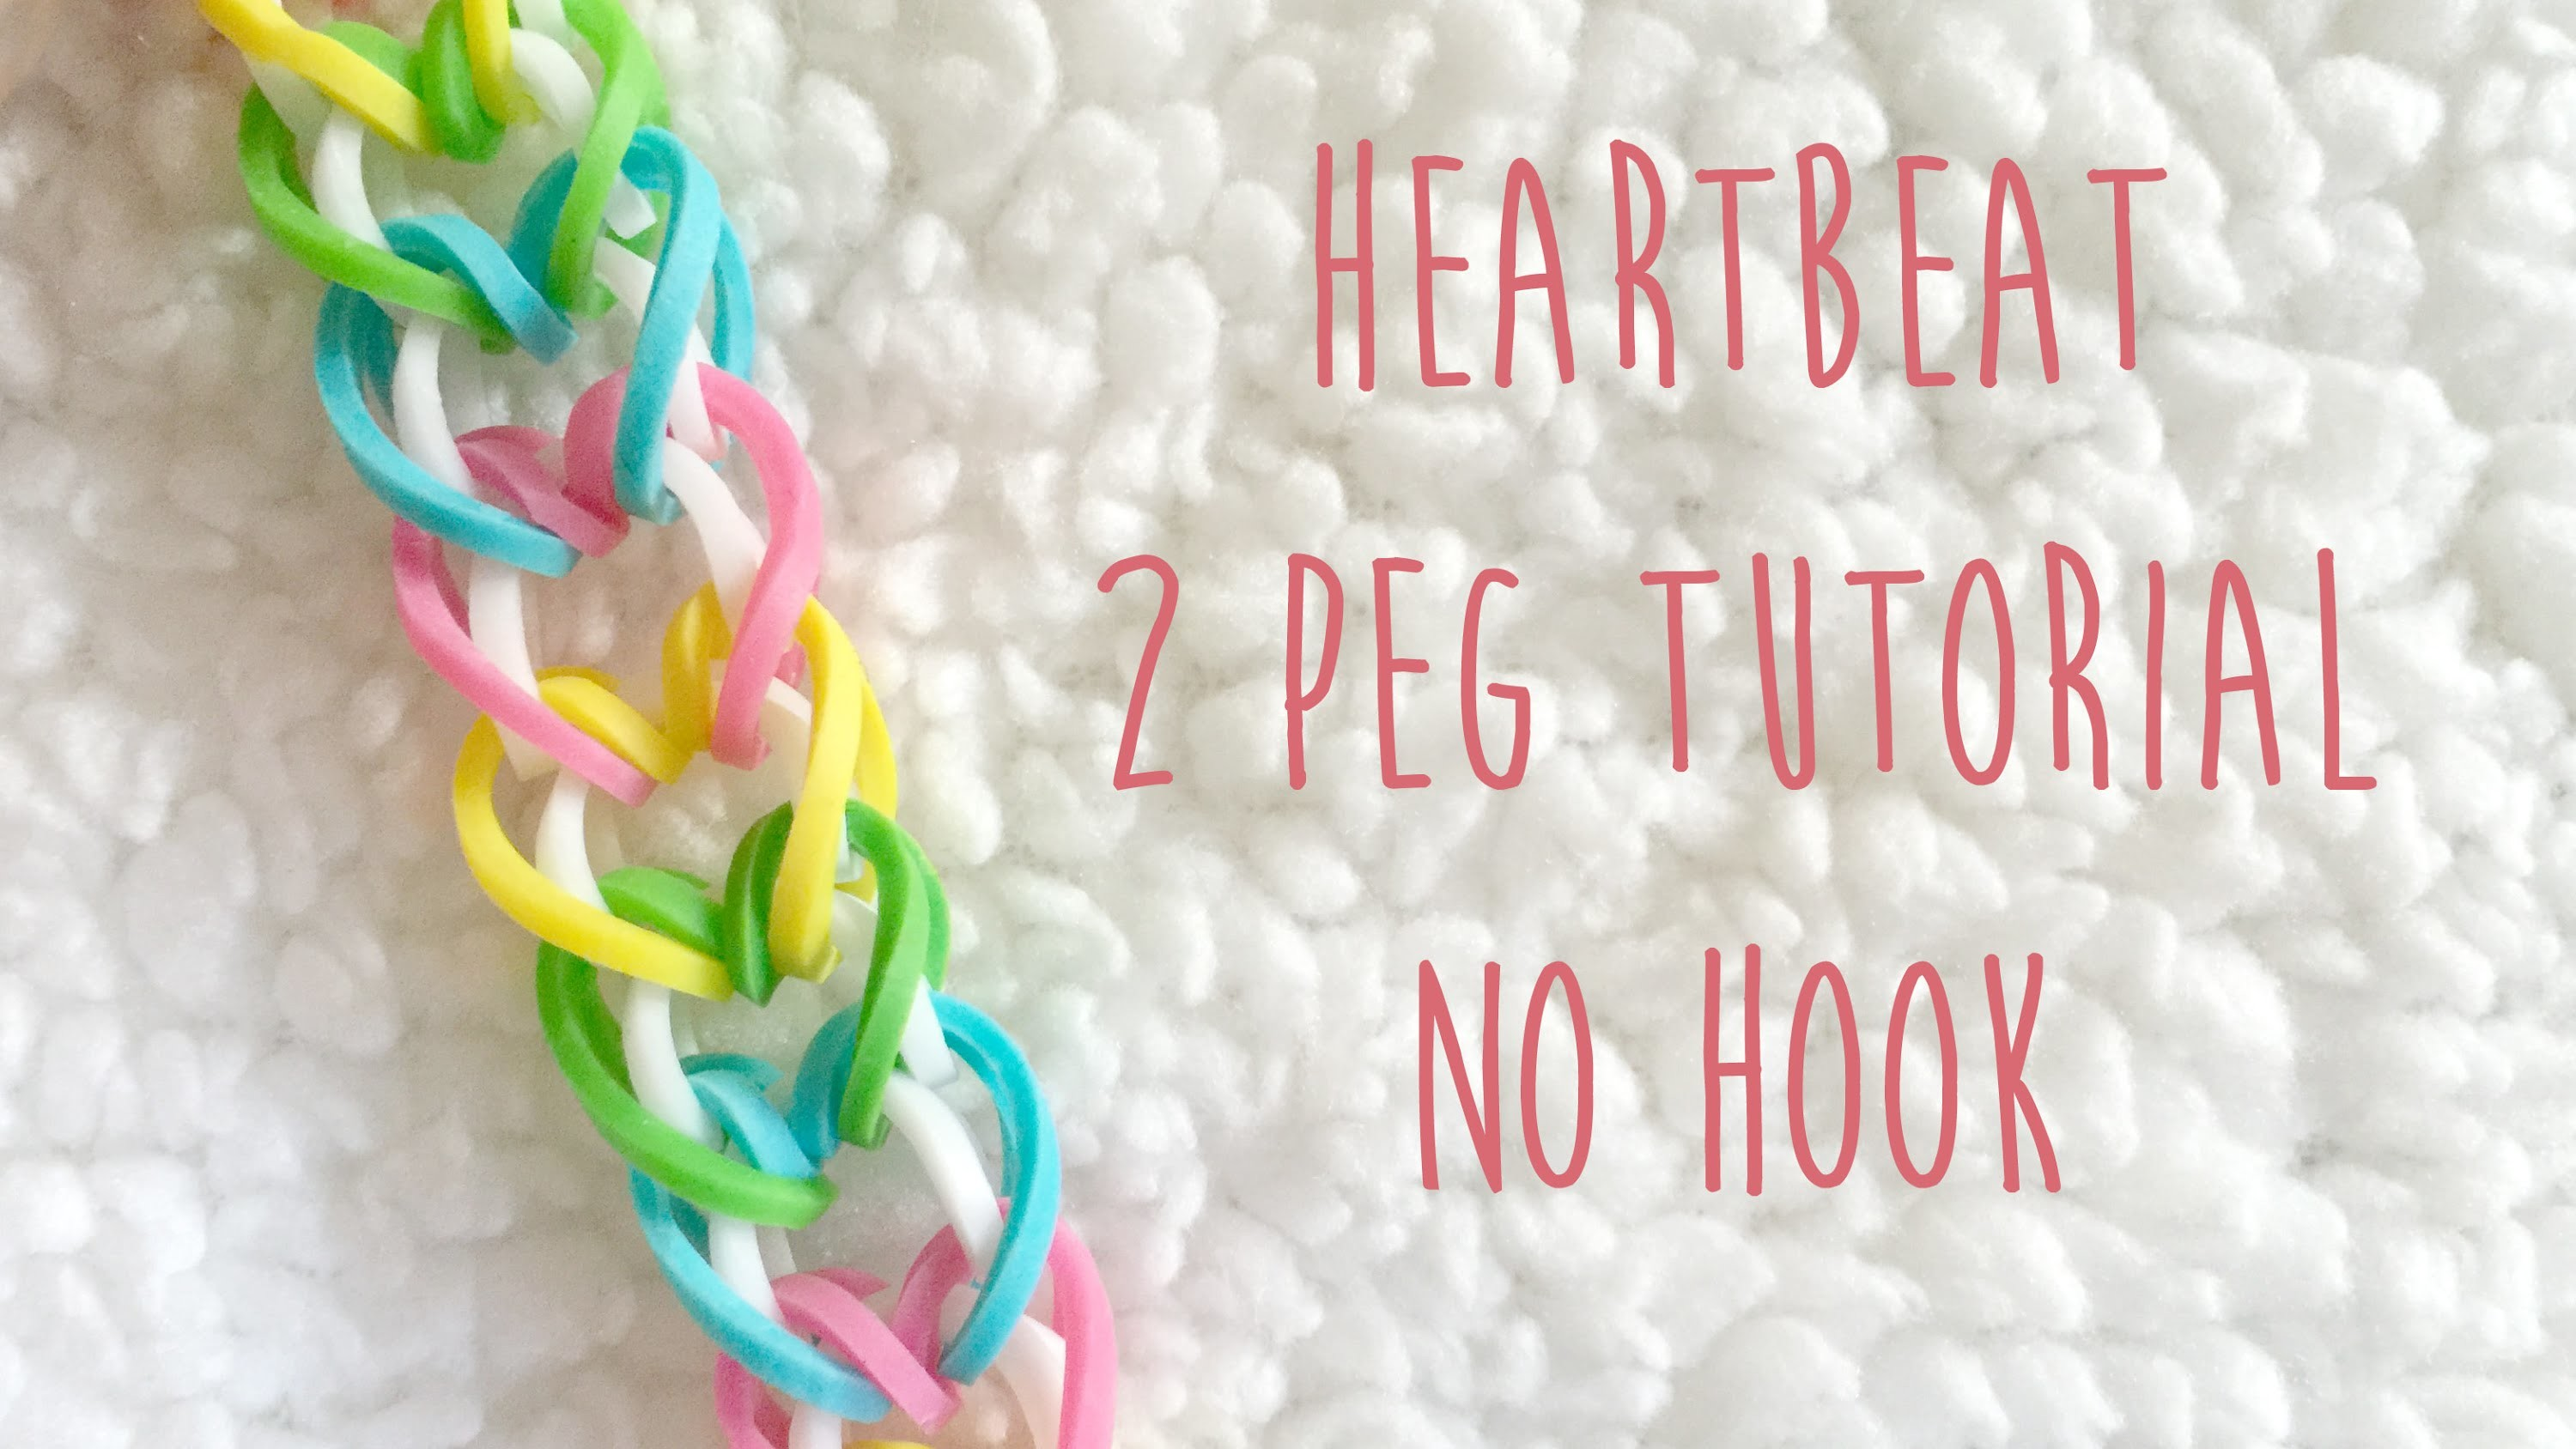 Rainbow Loom Heartbeat 2 Peg No Hook